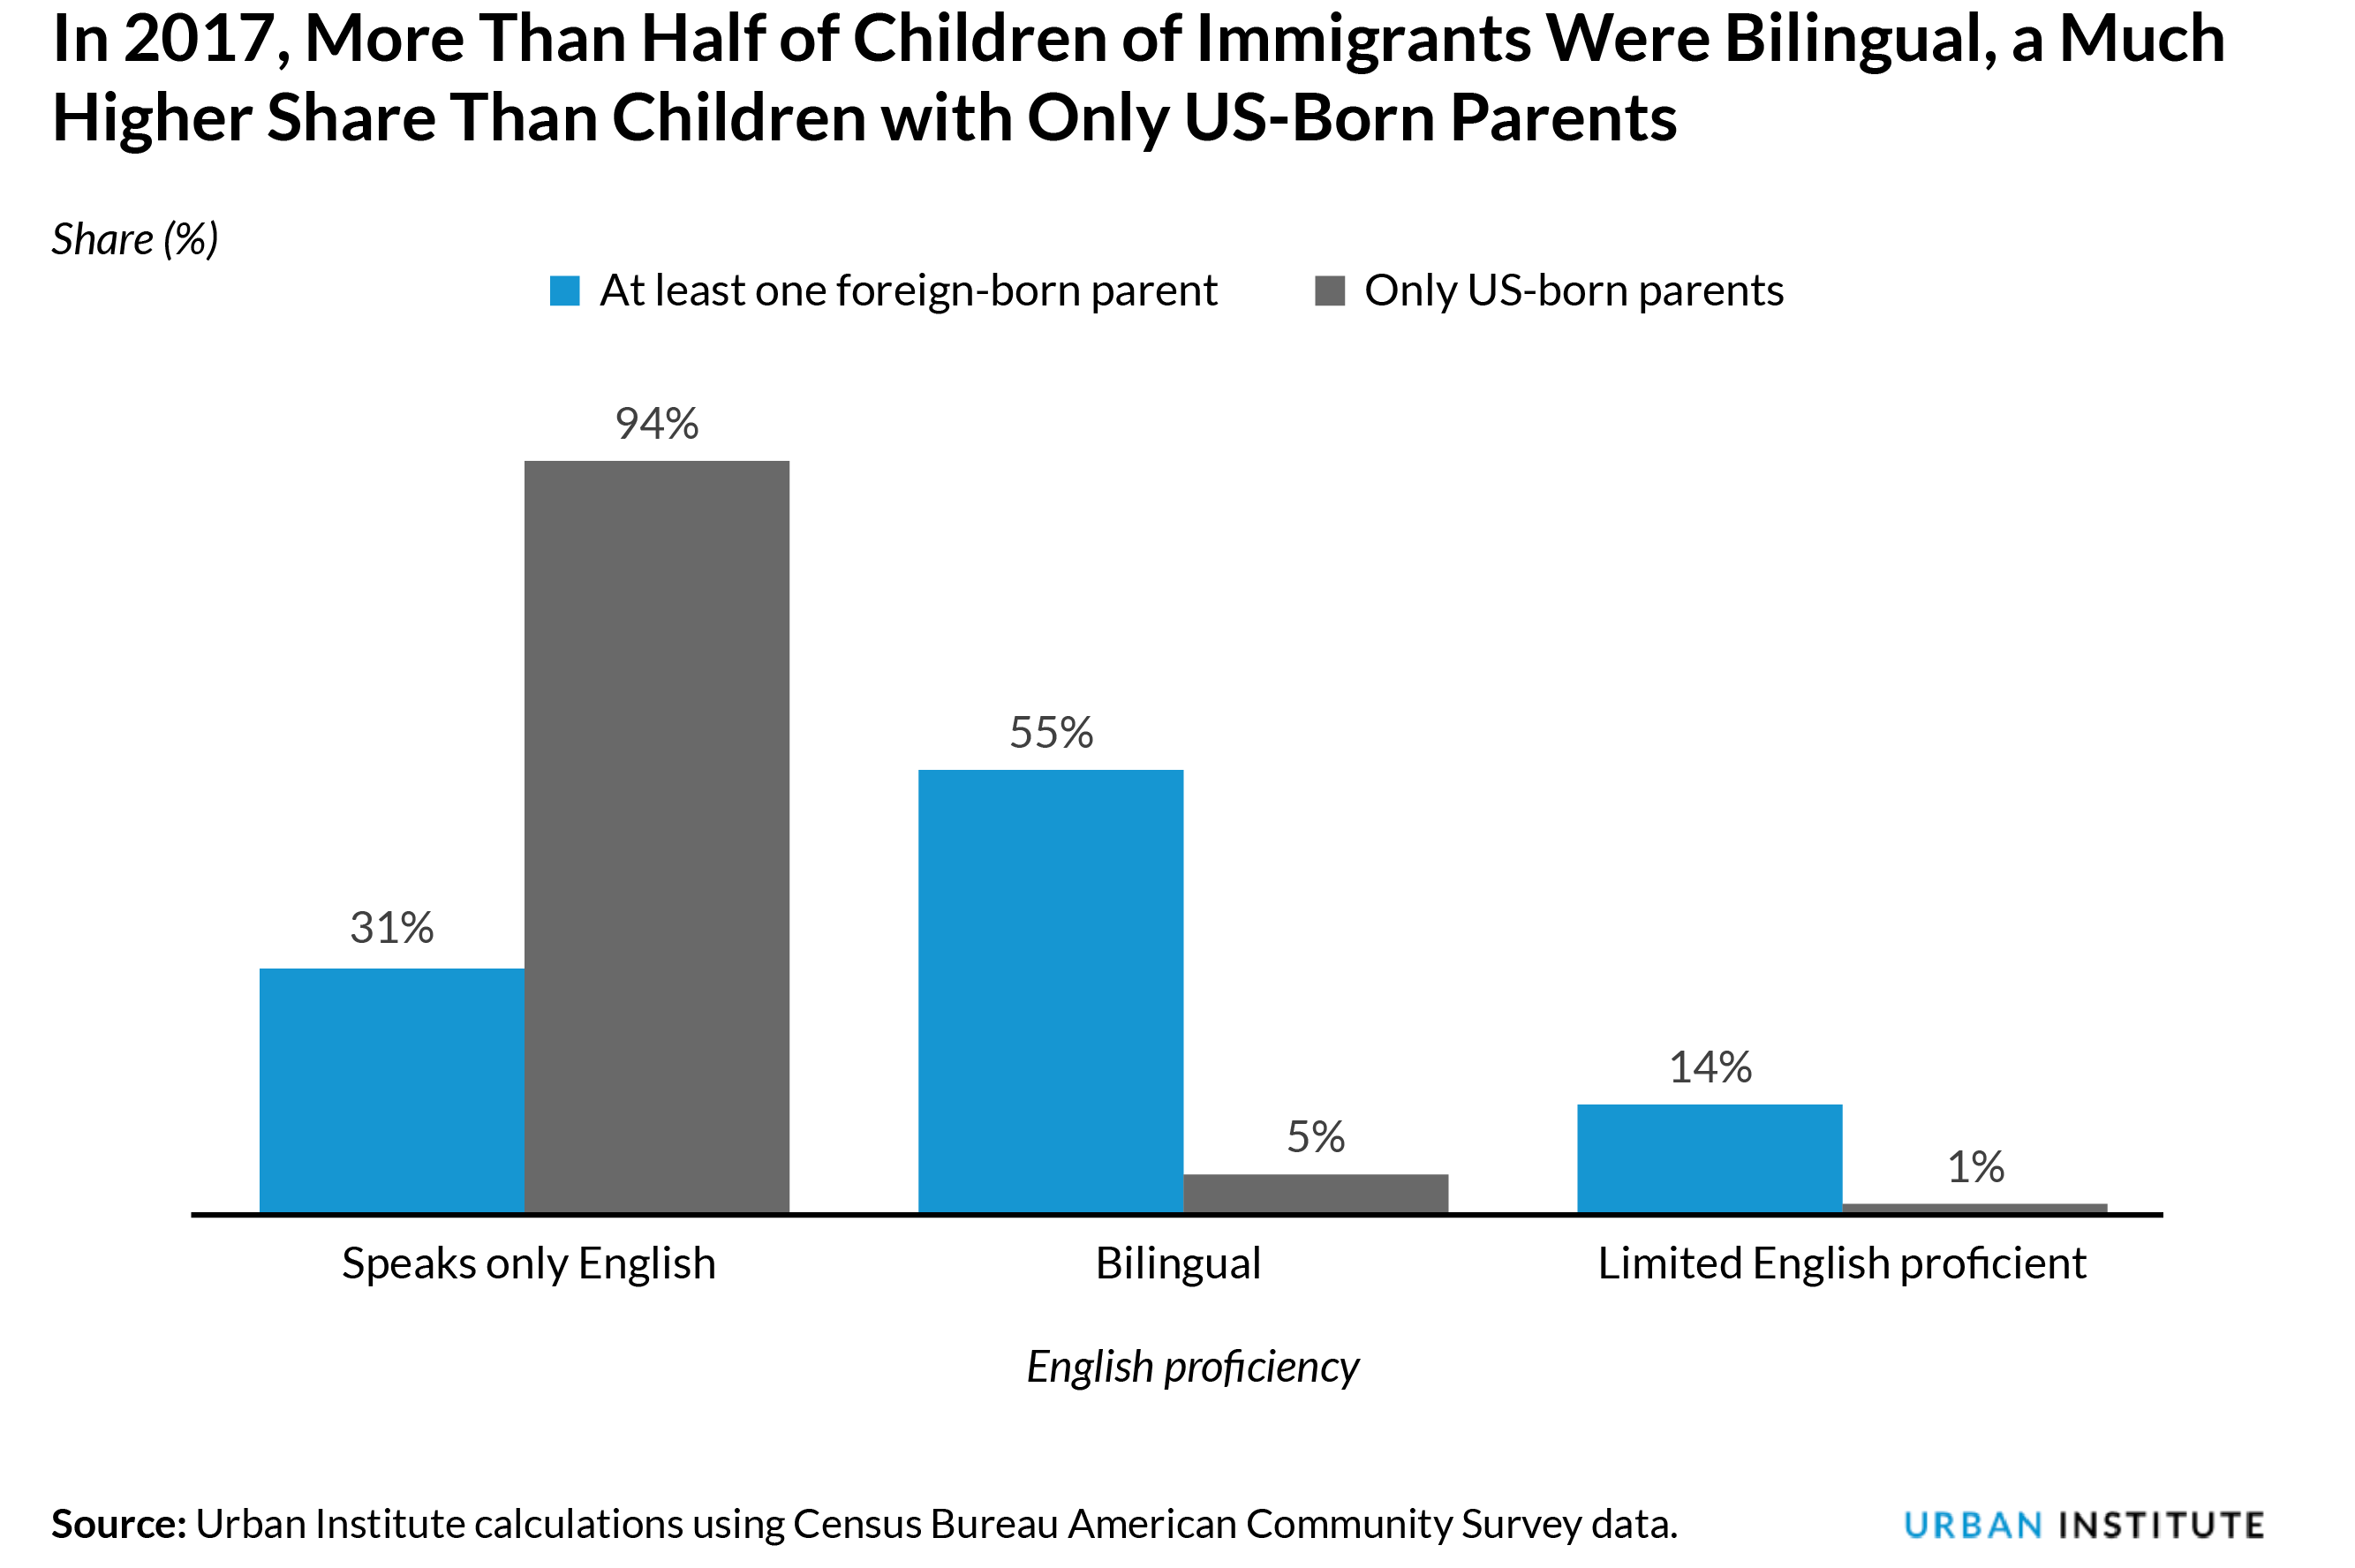 Grouped bar chart of bilingual status among children of immigrants